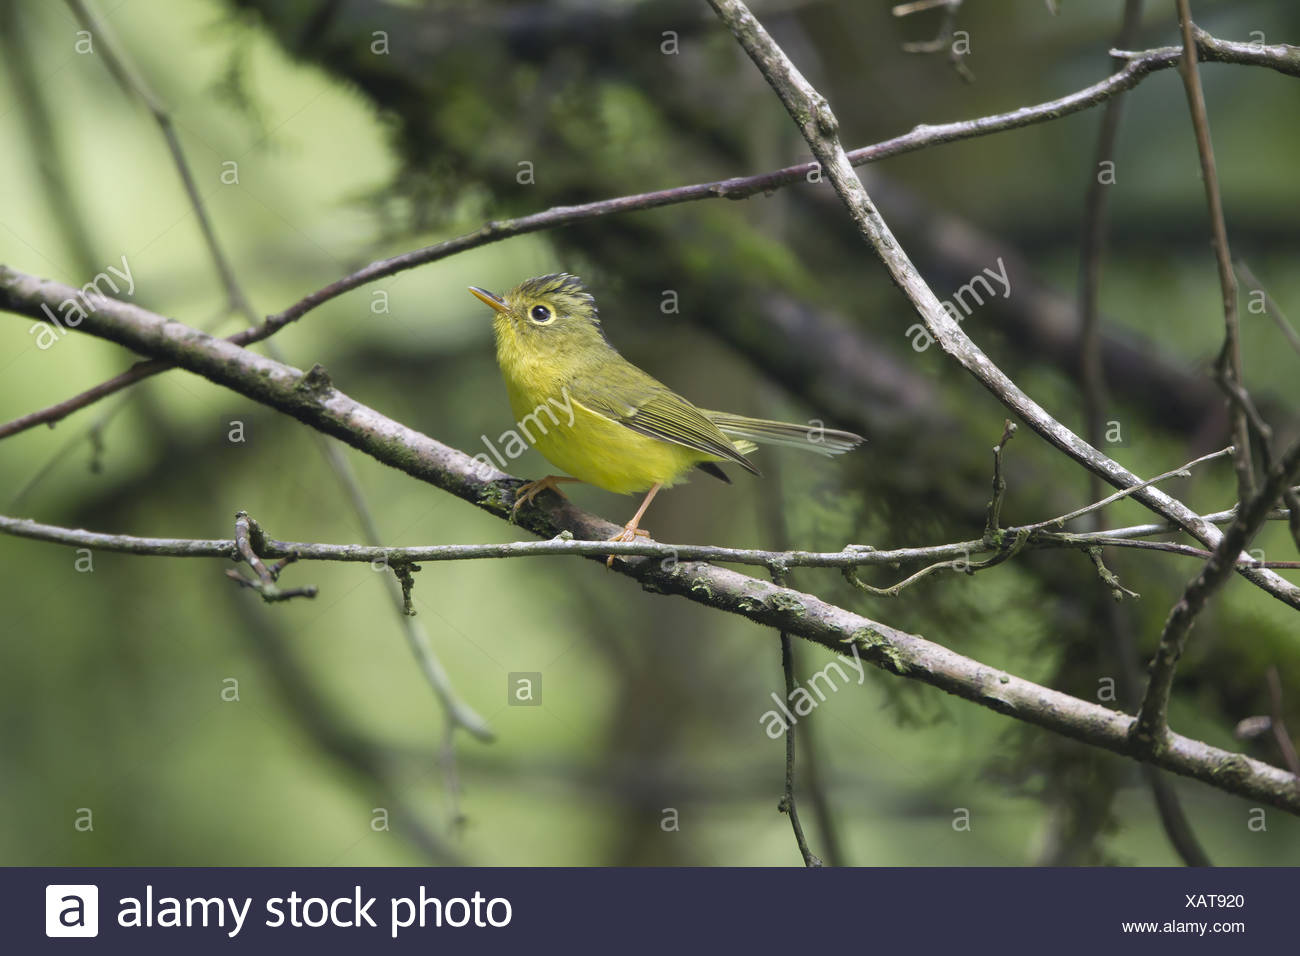 Whistler's Warbler (Seicercus whistleri) adult breeding plumage searching for prey items perched on twig Kathmandu Valley Stock Photo